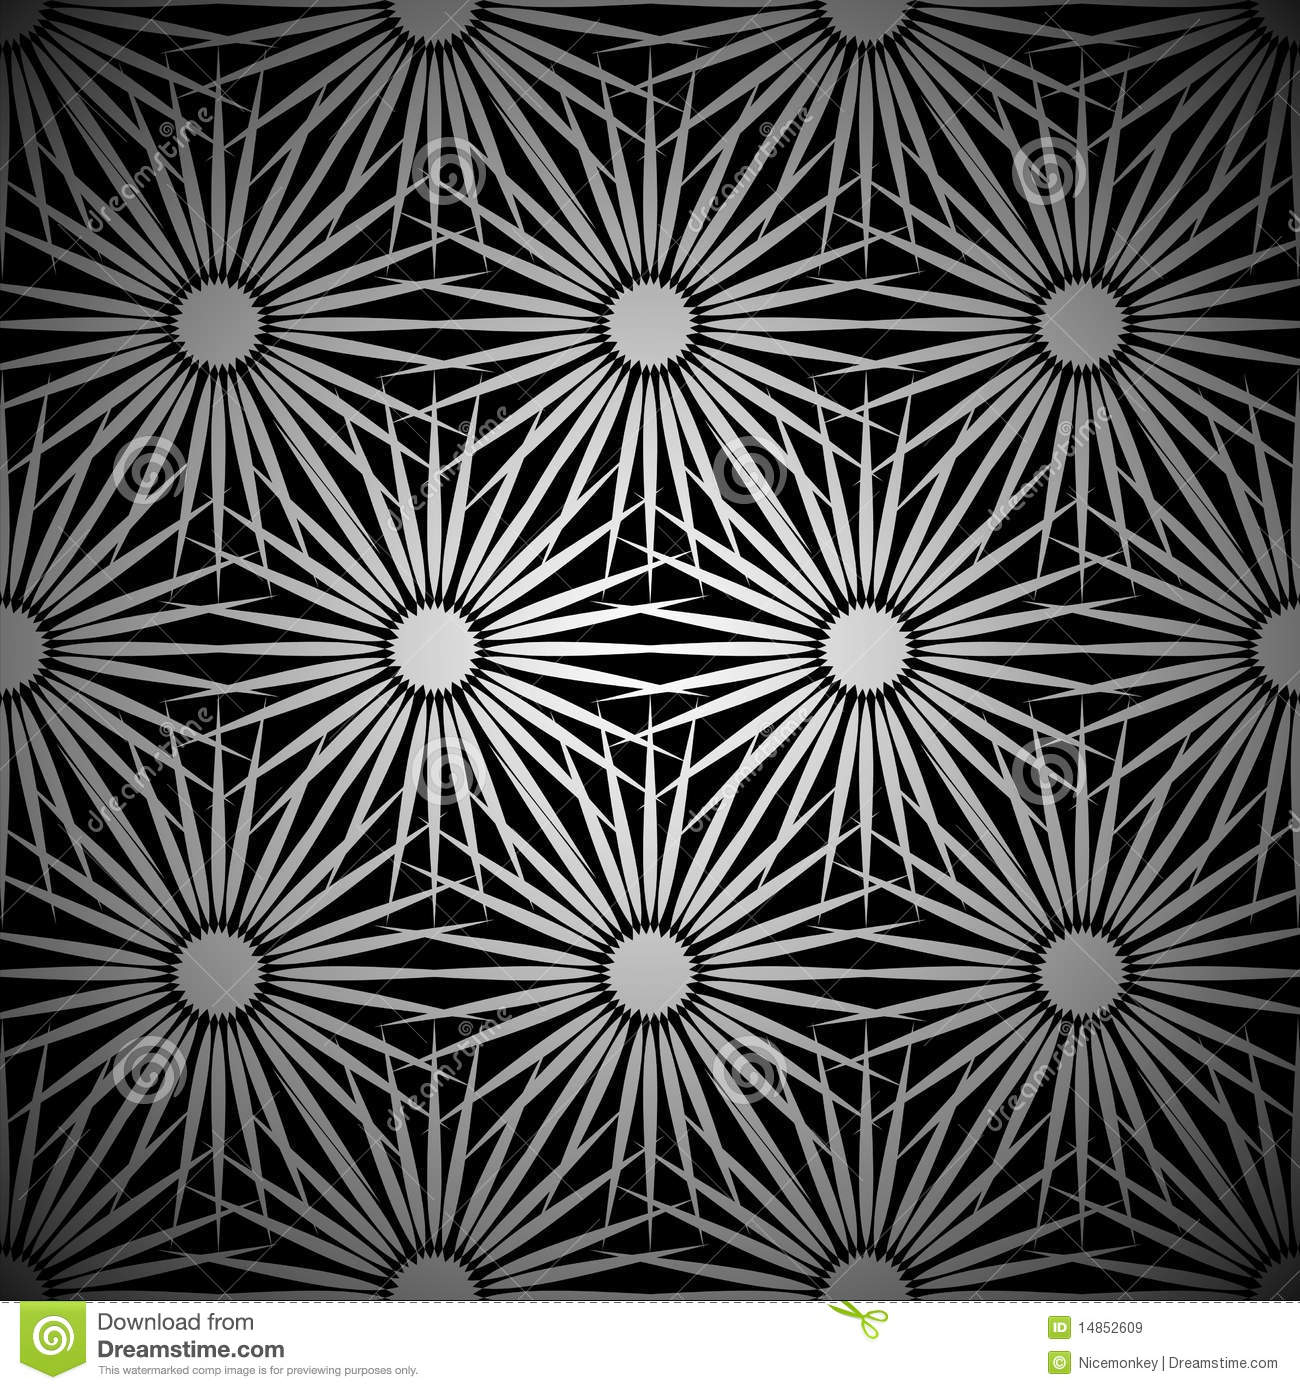 Silver floral explosion background